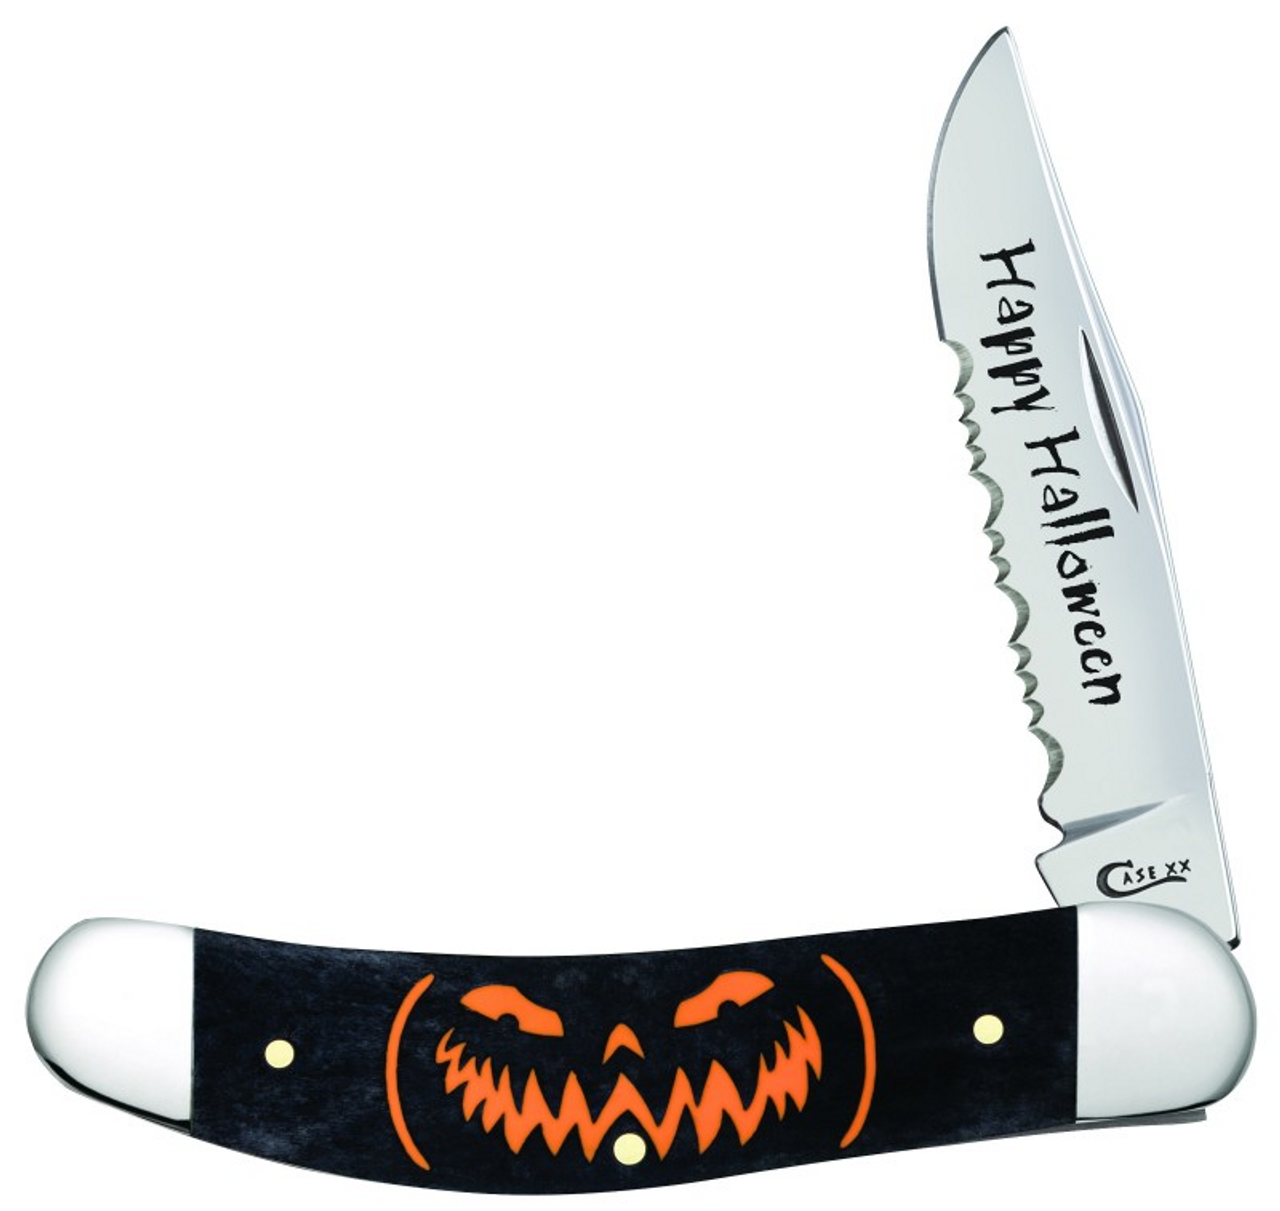 "Case 2019 Happy Halloween Sowbelly, CA10586, 3.875"" TruSharp Surgical Steel Bades, Bone Handle"